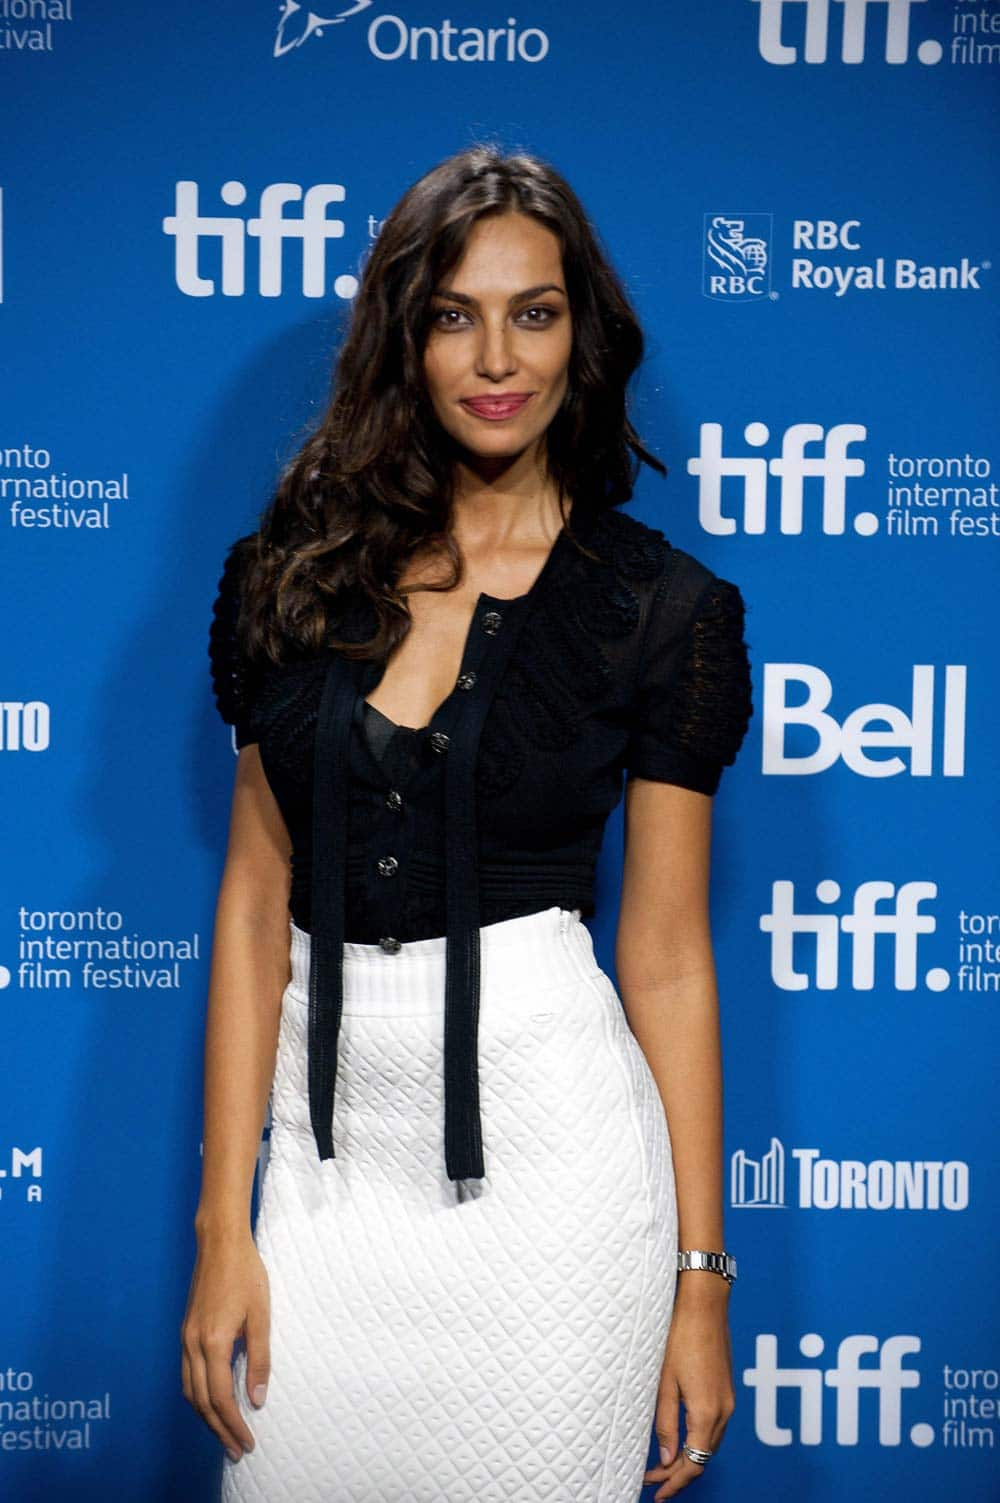 Actress Madalina Ghenea poses for a picture at a photo call for